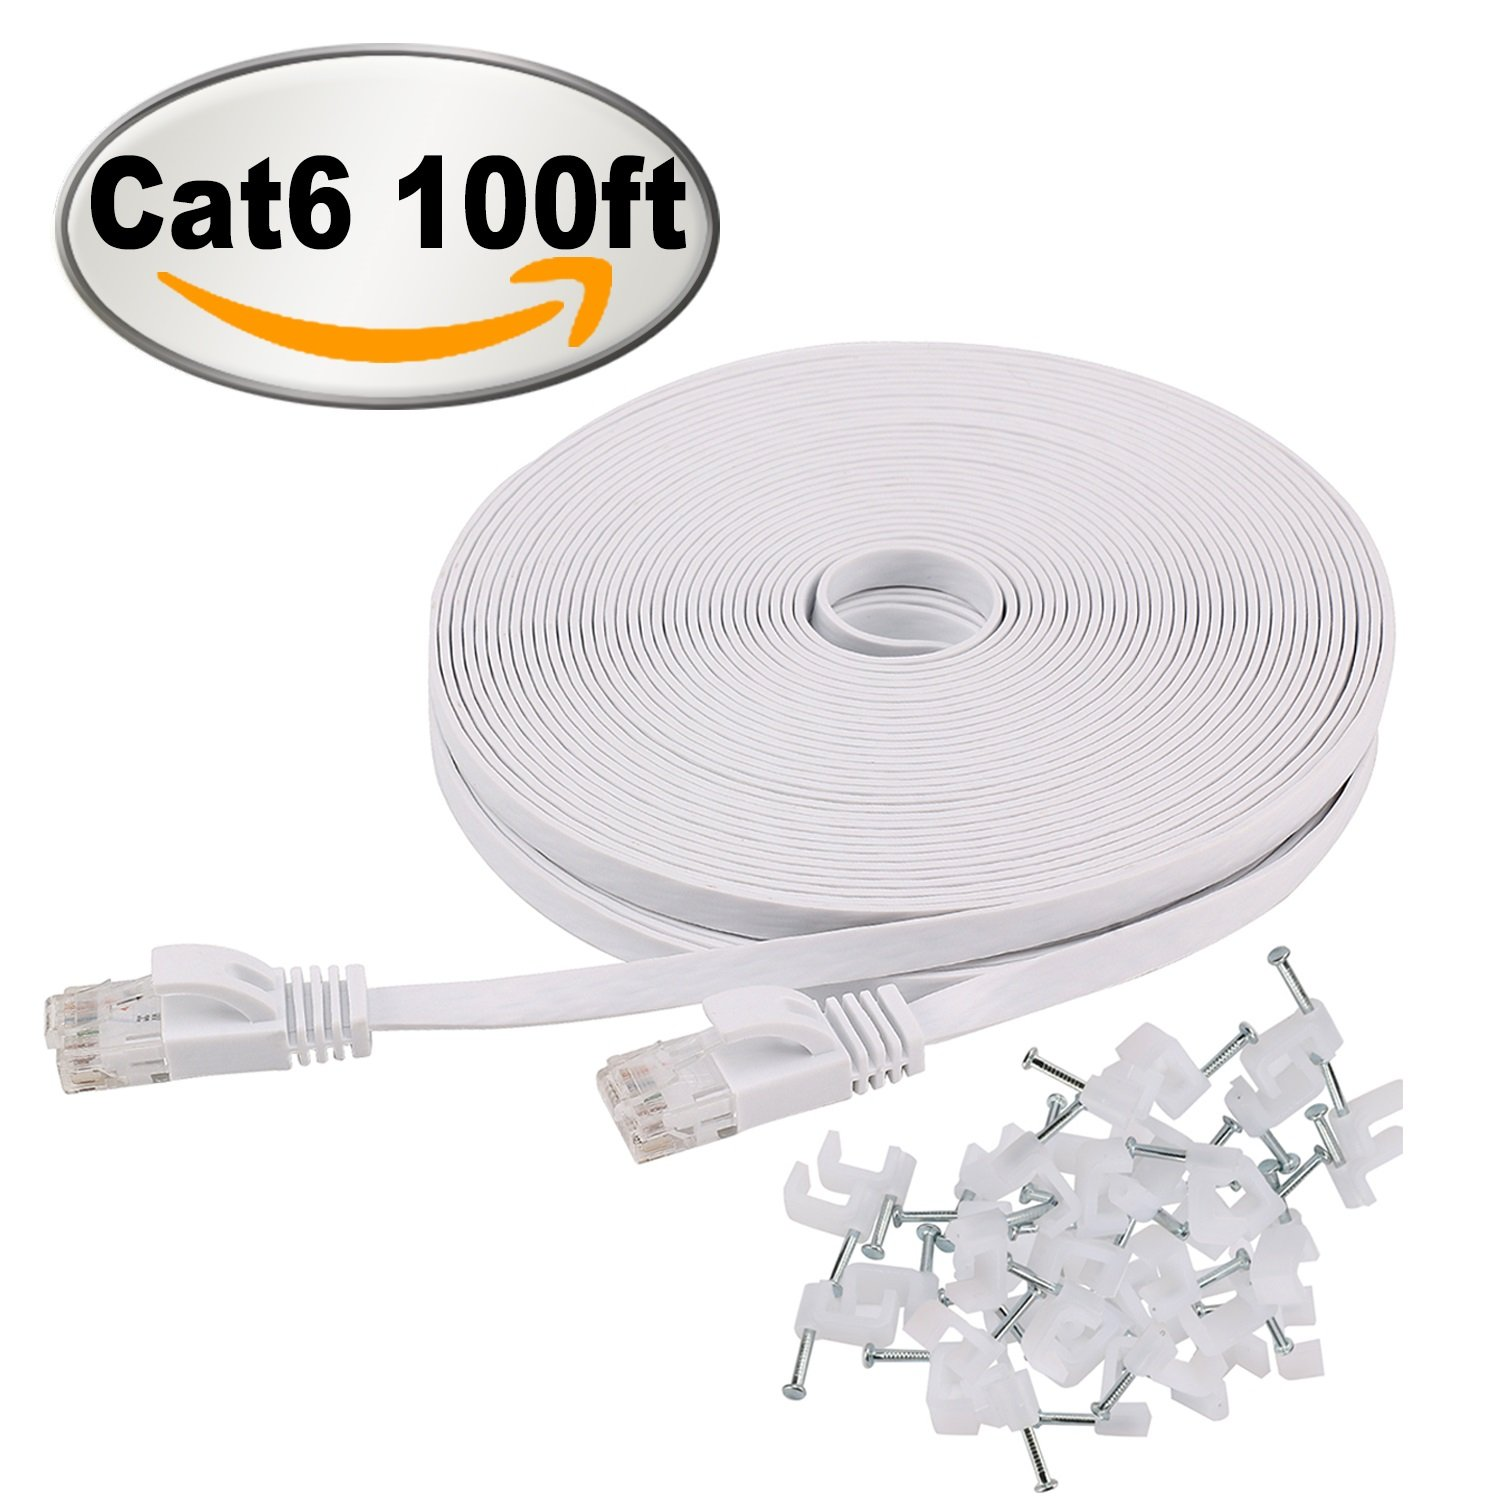 Cat 6 Ethernet Cable 100 ft White Flat with Clips – Slim Long Internet Network Cable – Fast Computer Lan Cable - Cat6 Ethernet Patch Cable With Snagless Rj45 Connectors –100 feet White(30 Meters)